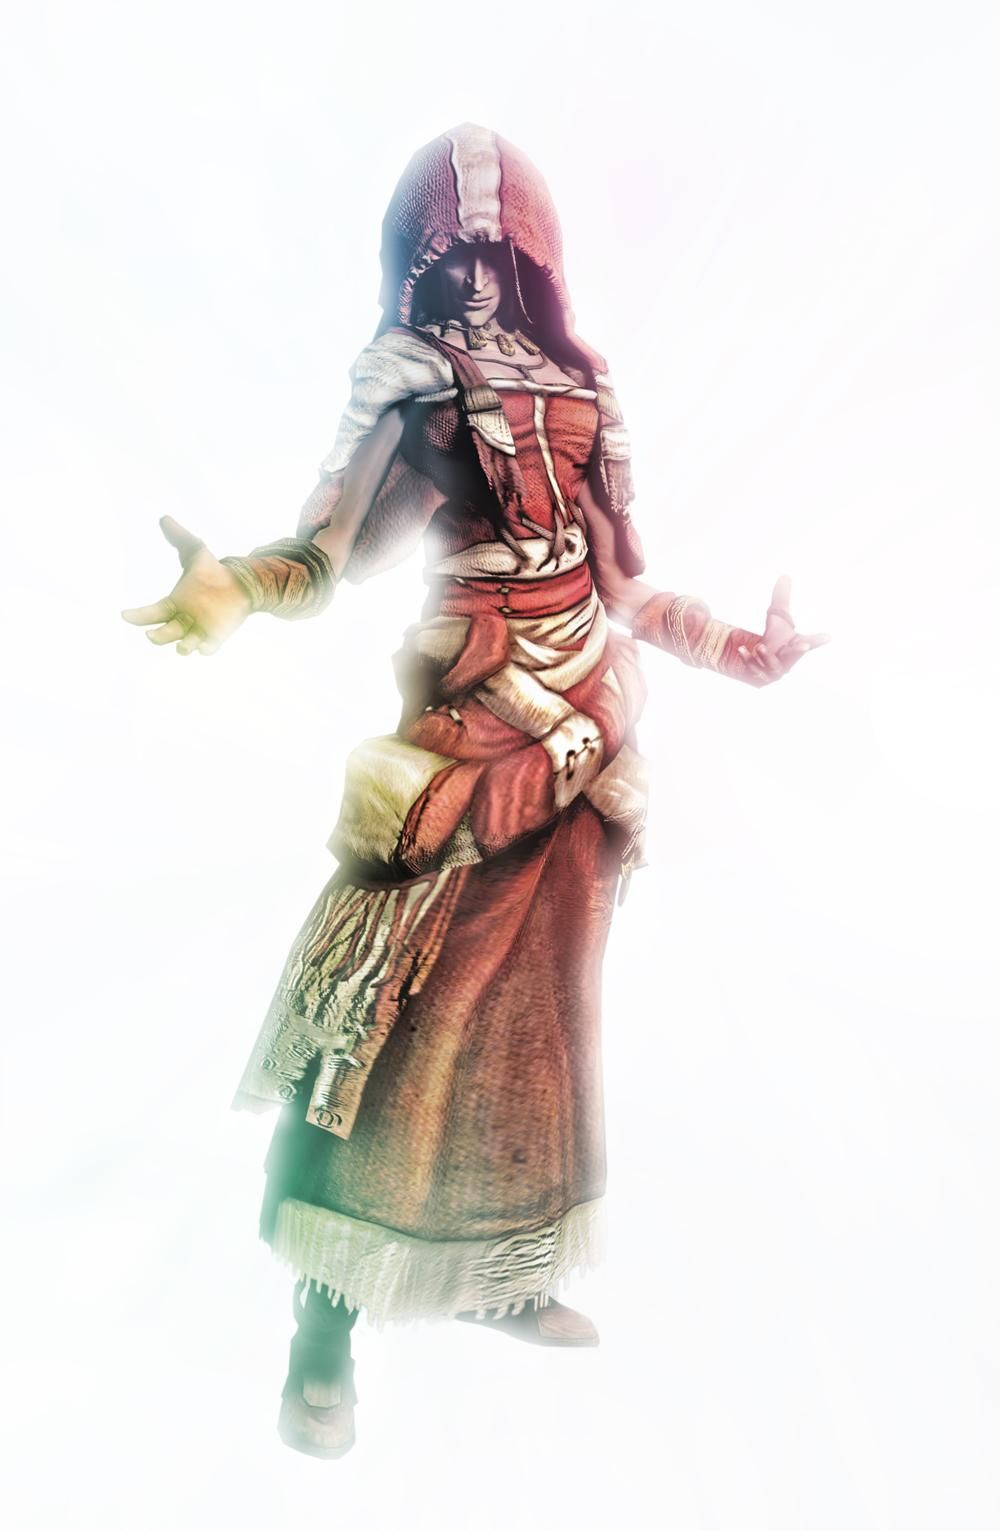 Theresa | Cosplay | Fable 2, Fable 3, Game costumes